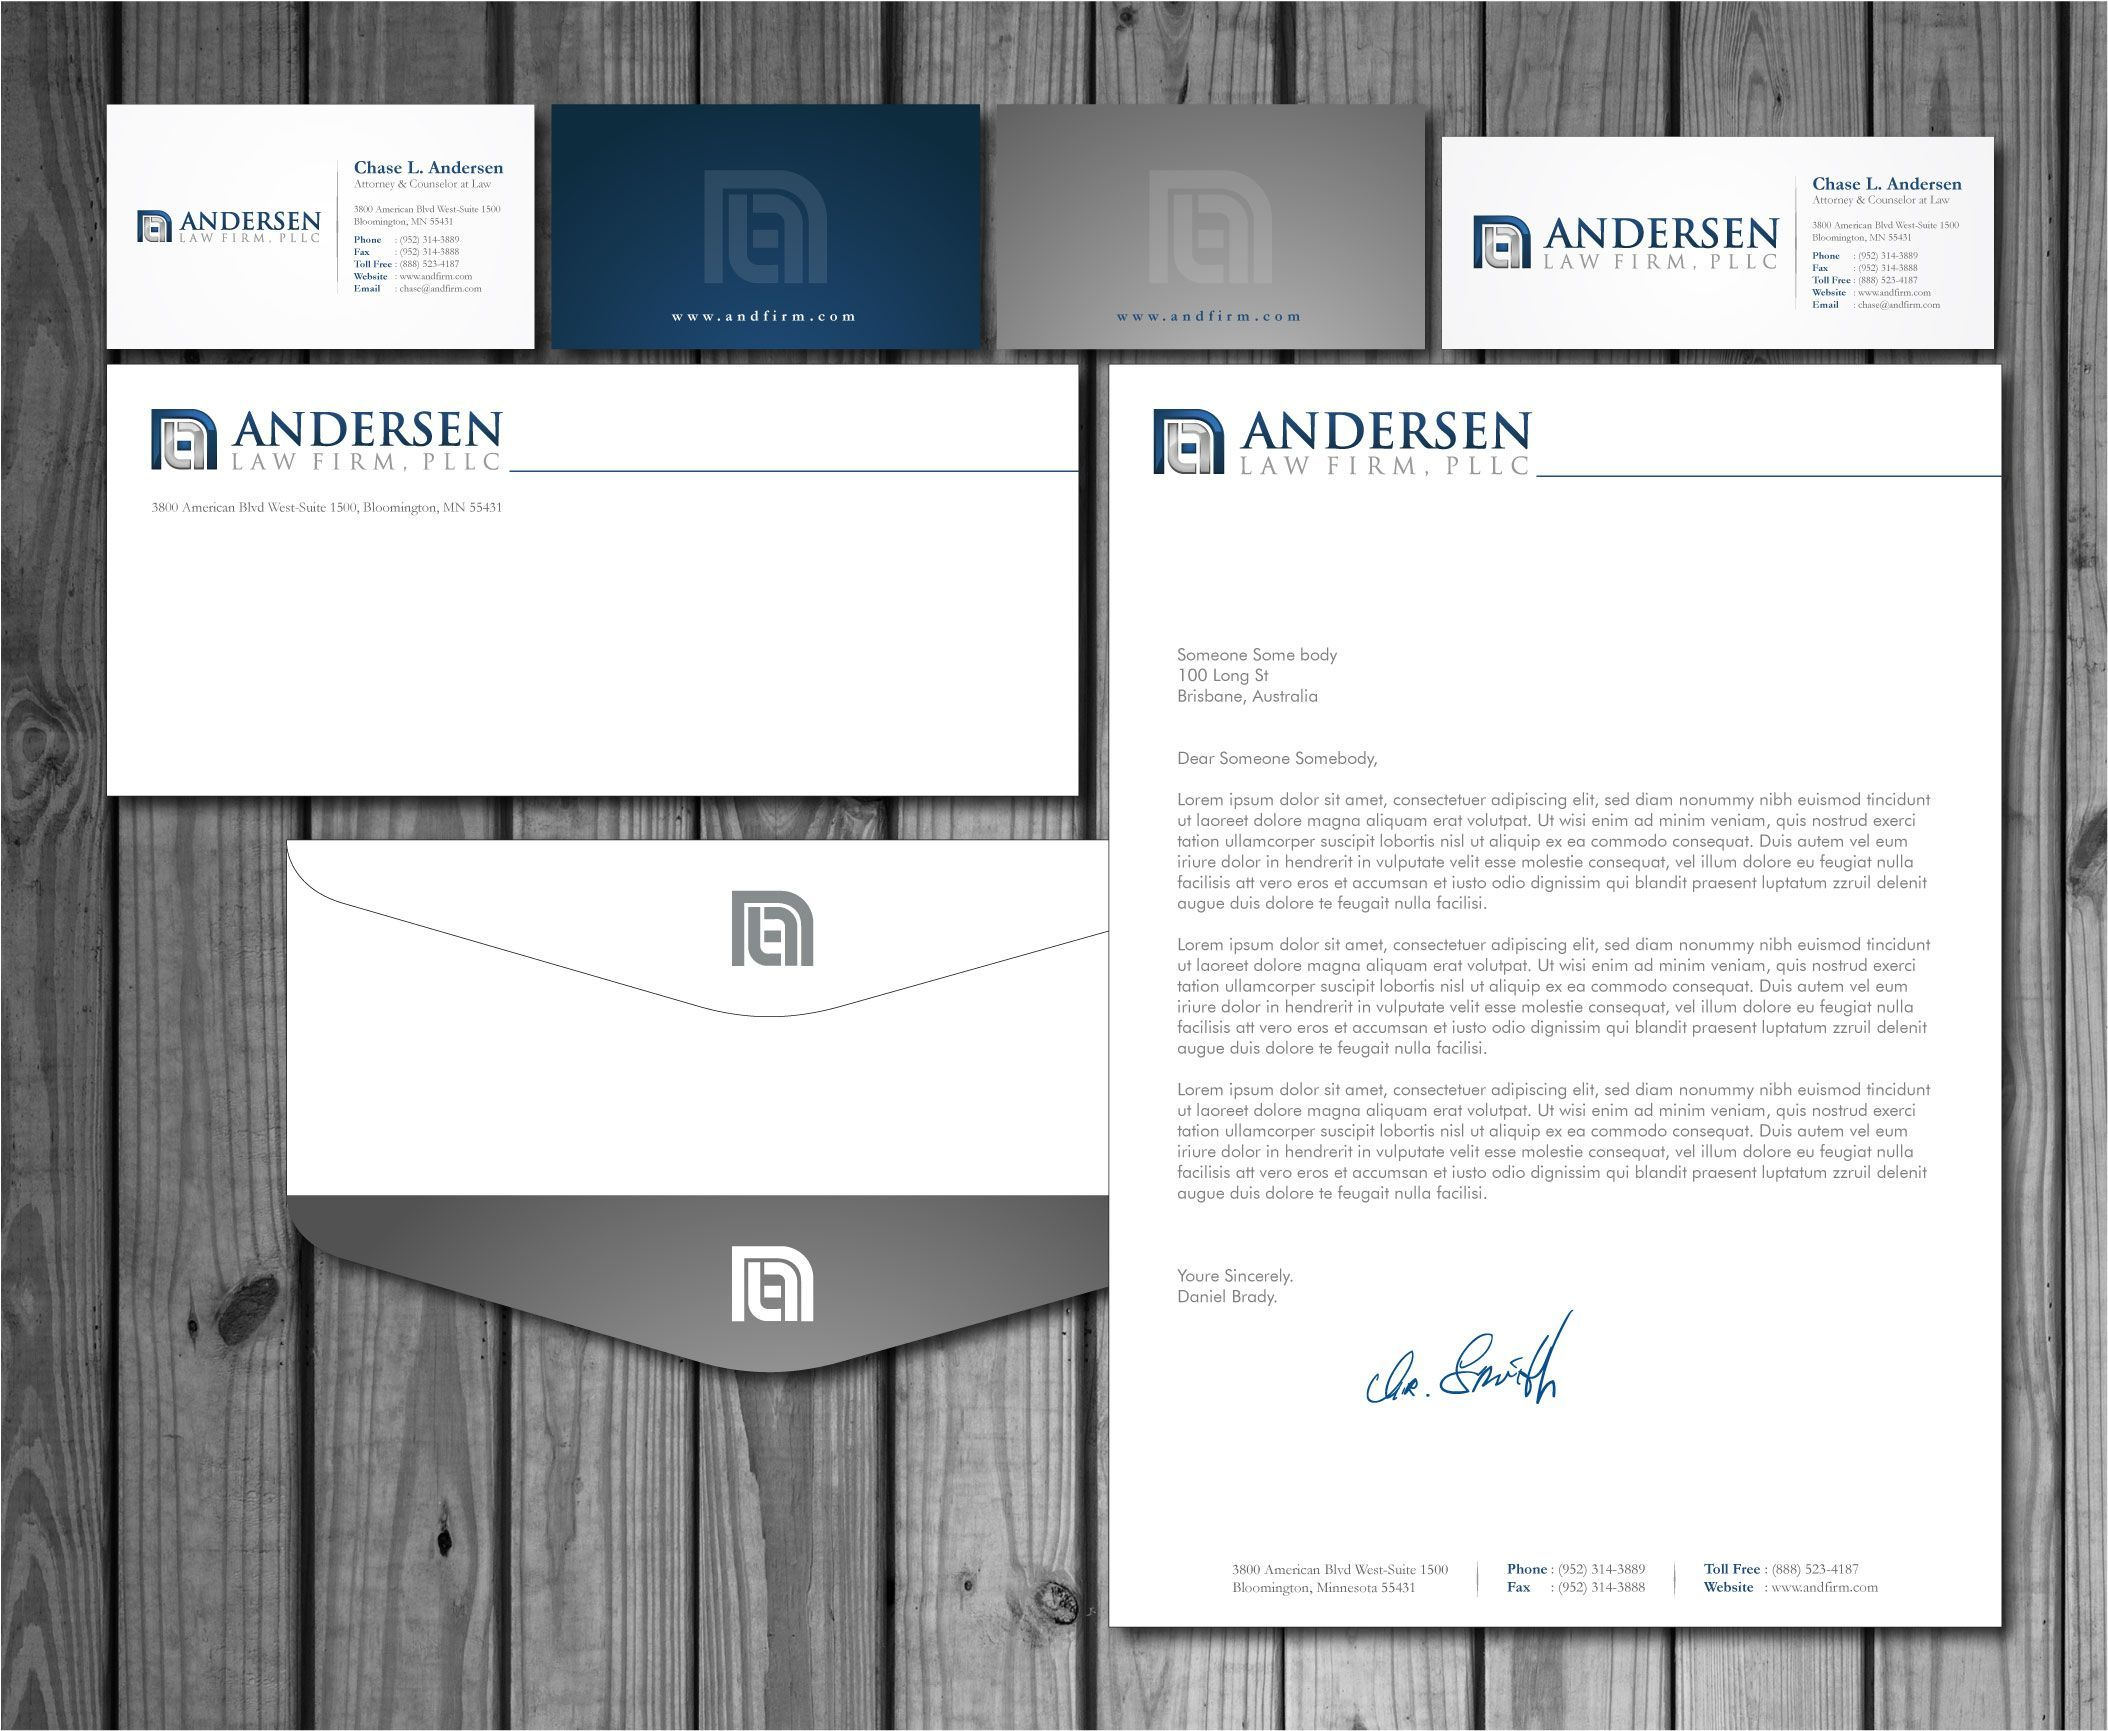 Check Out This Design For Andersen Law Firm Pllc Business Cards Letterhead Envelopes By Mycroburs Letterhead Business Law Firm Logo Design Letterhead Template